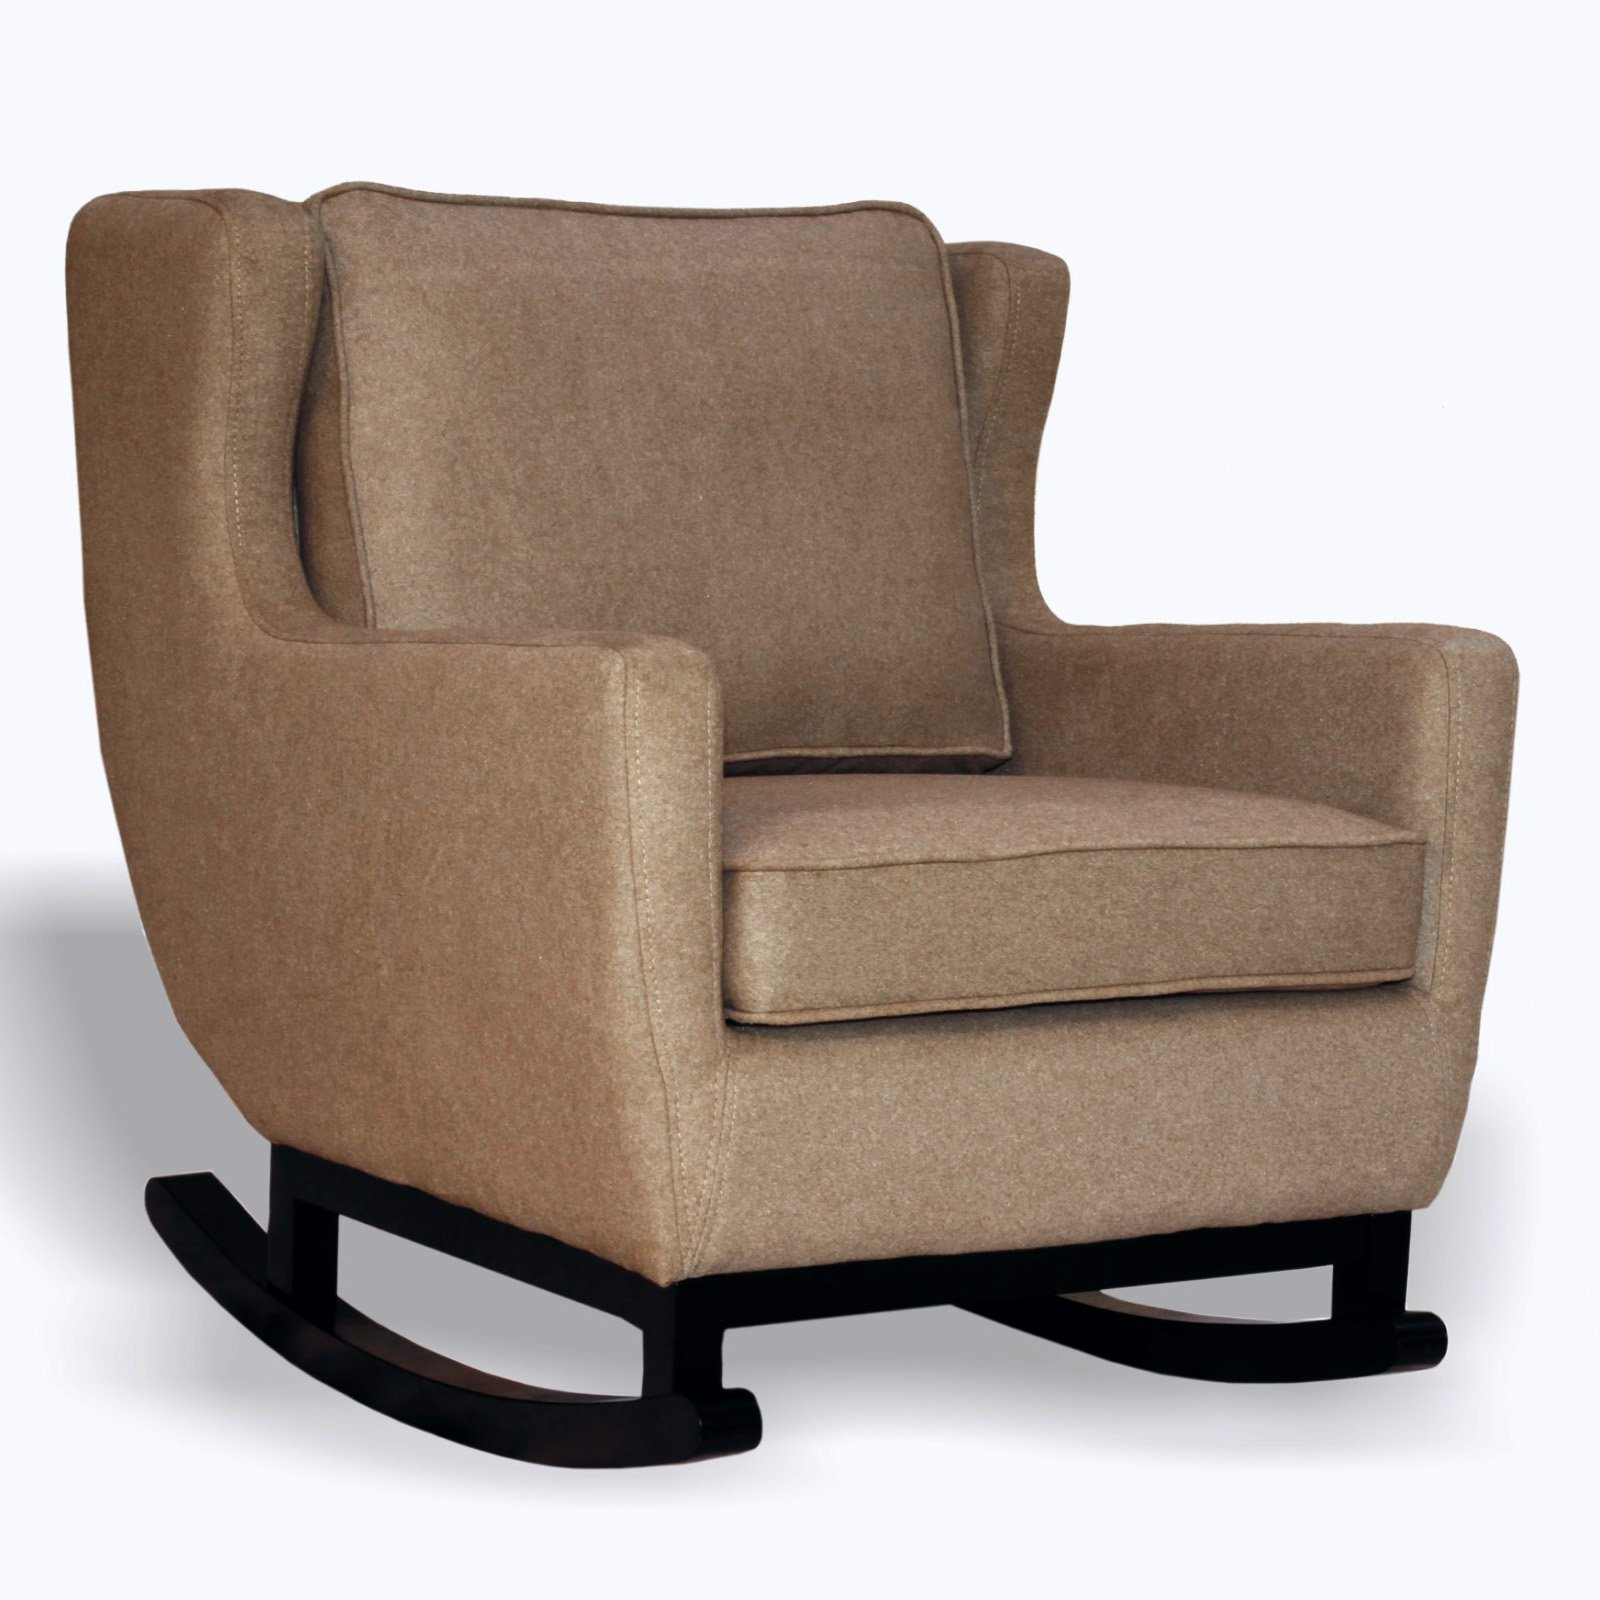 Image of: Top Oversized Rocking Chair